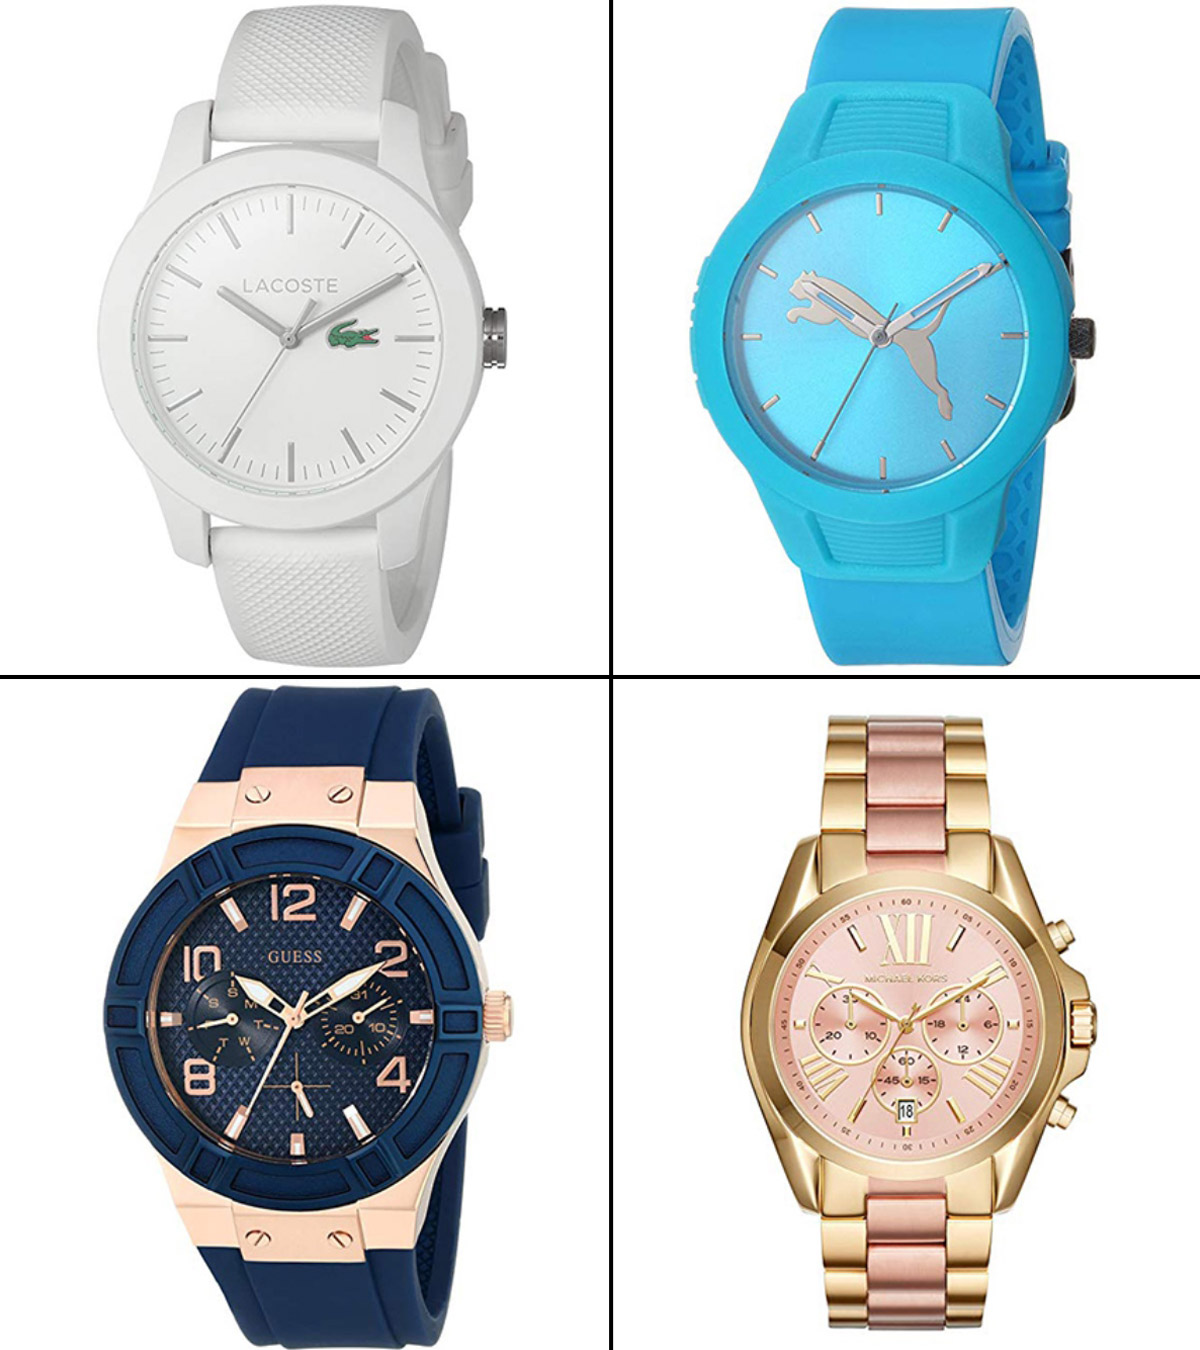 15 Best Watches For Girls To Buy In 2020